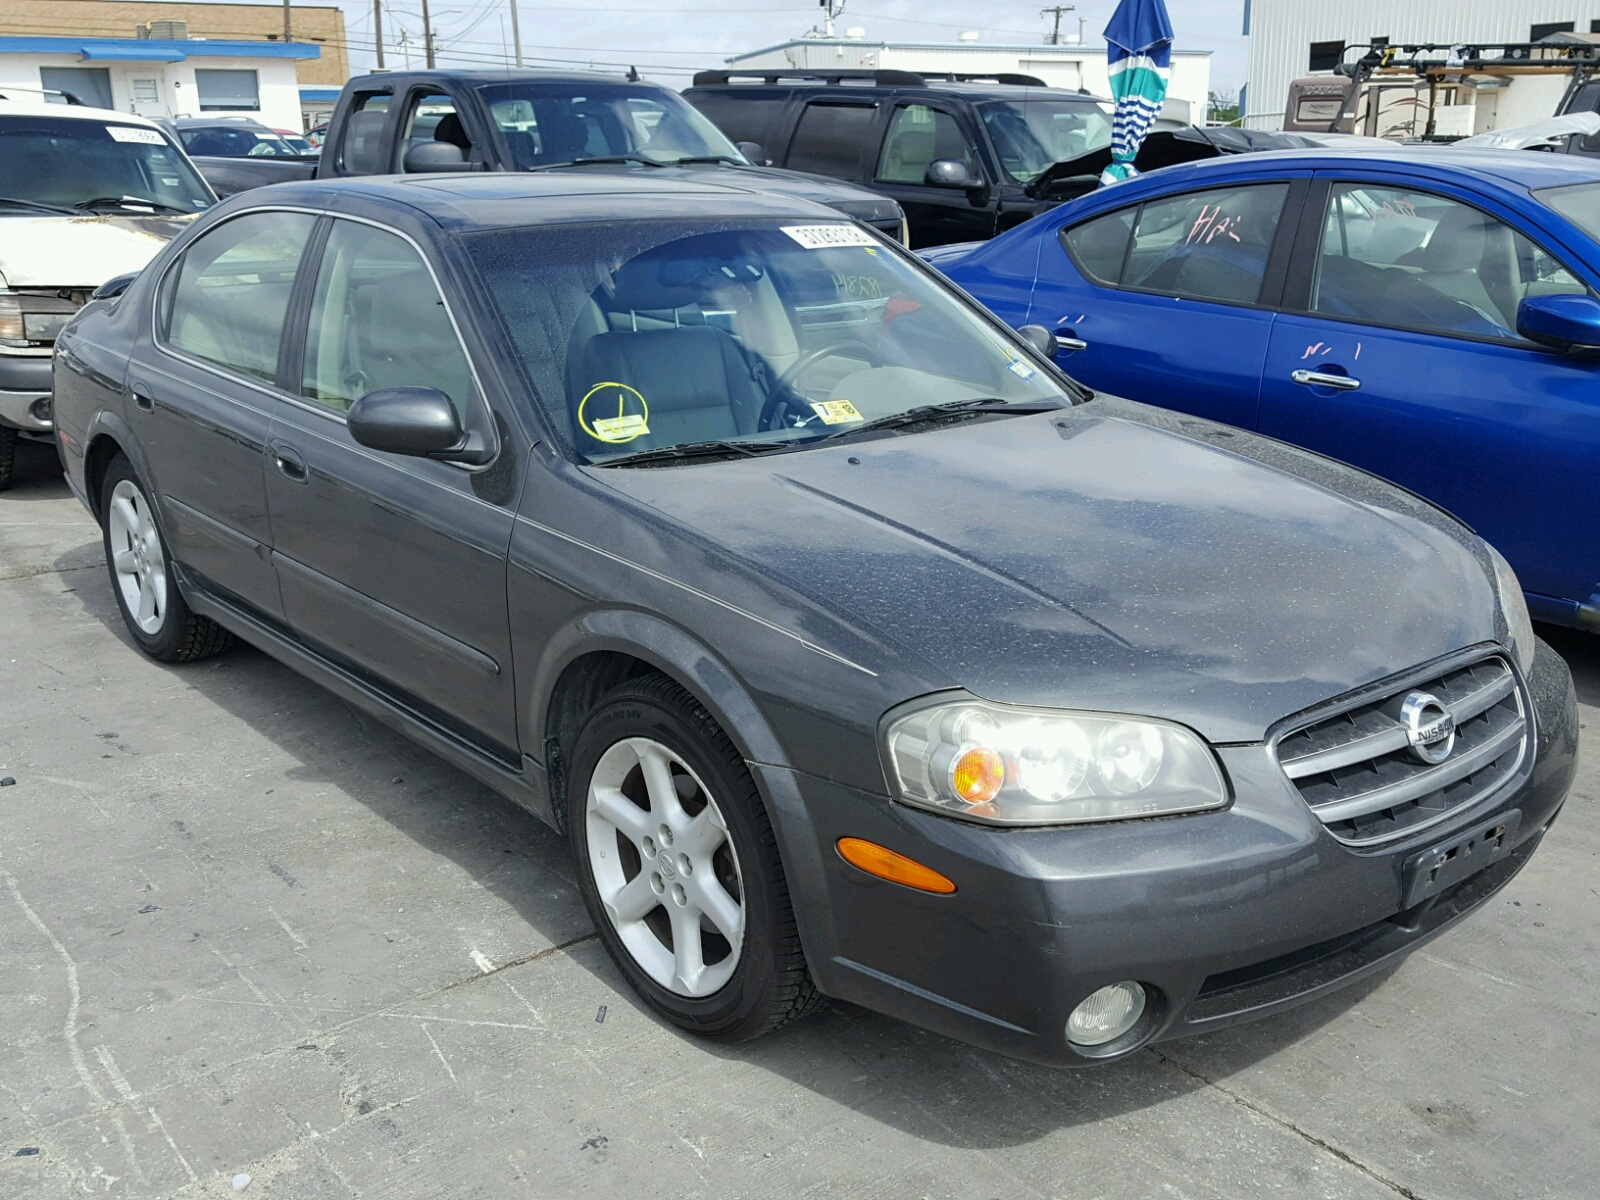 Salvage 2003 Nissan MAXIMA GLE for sale